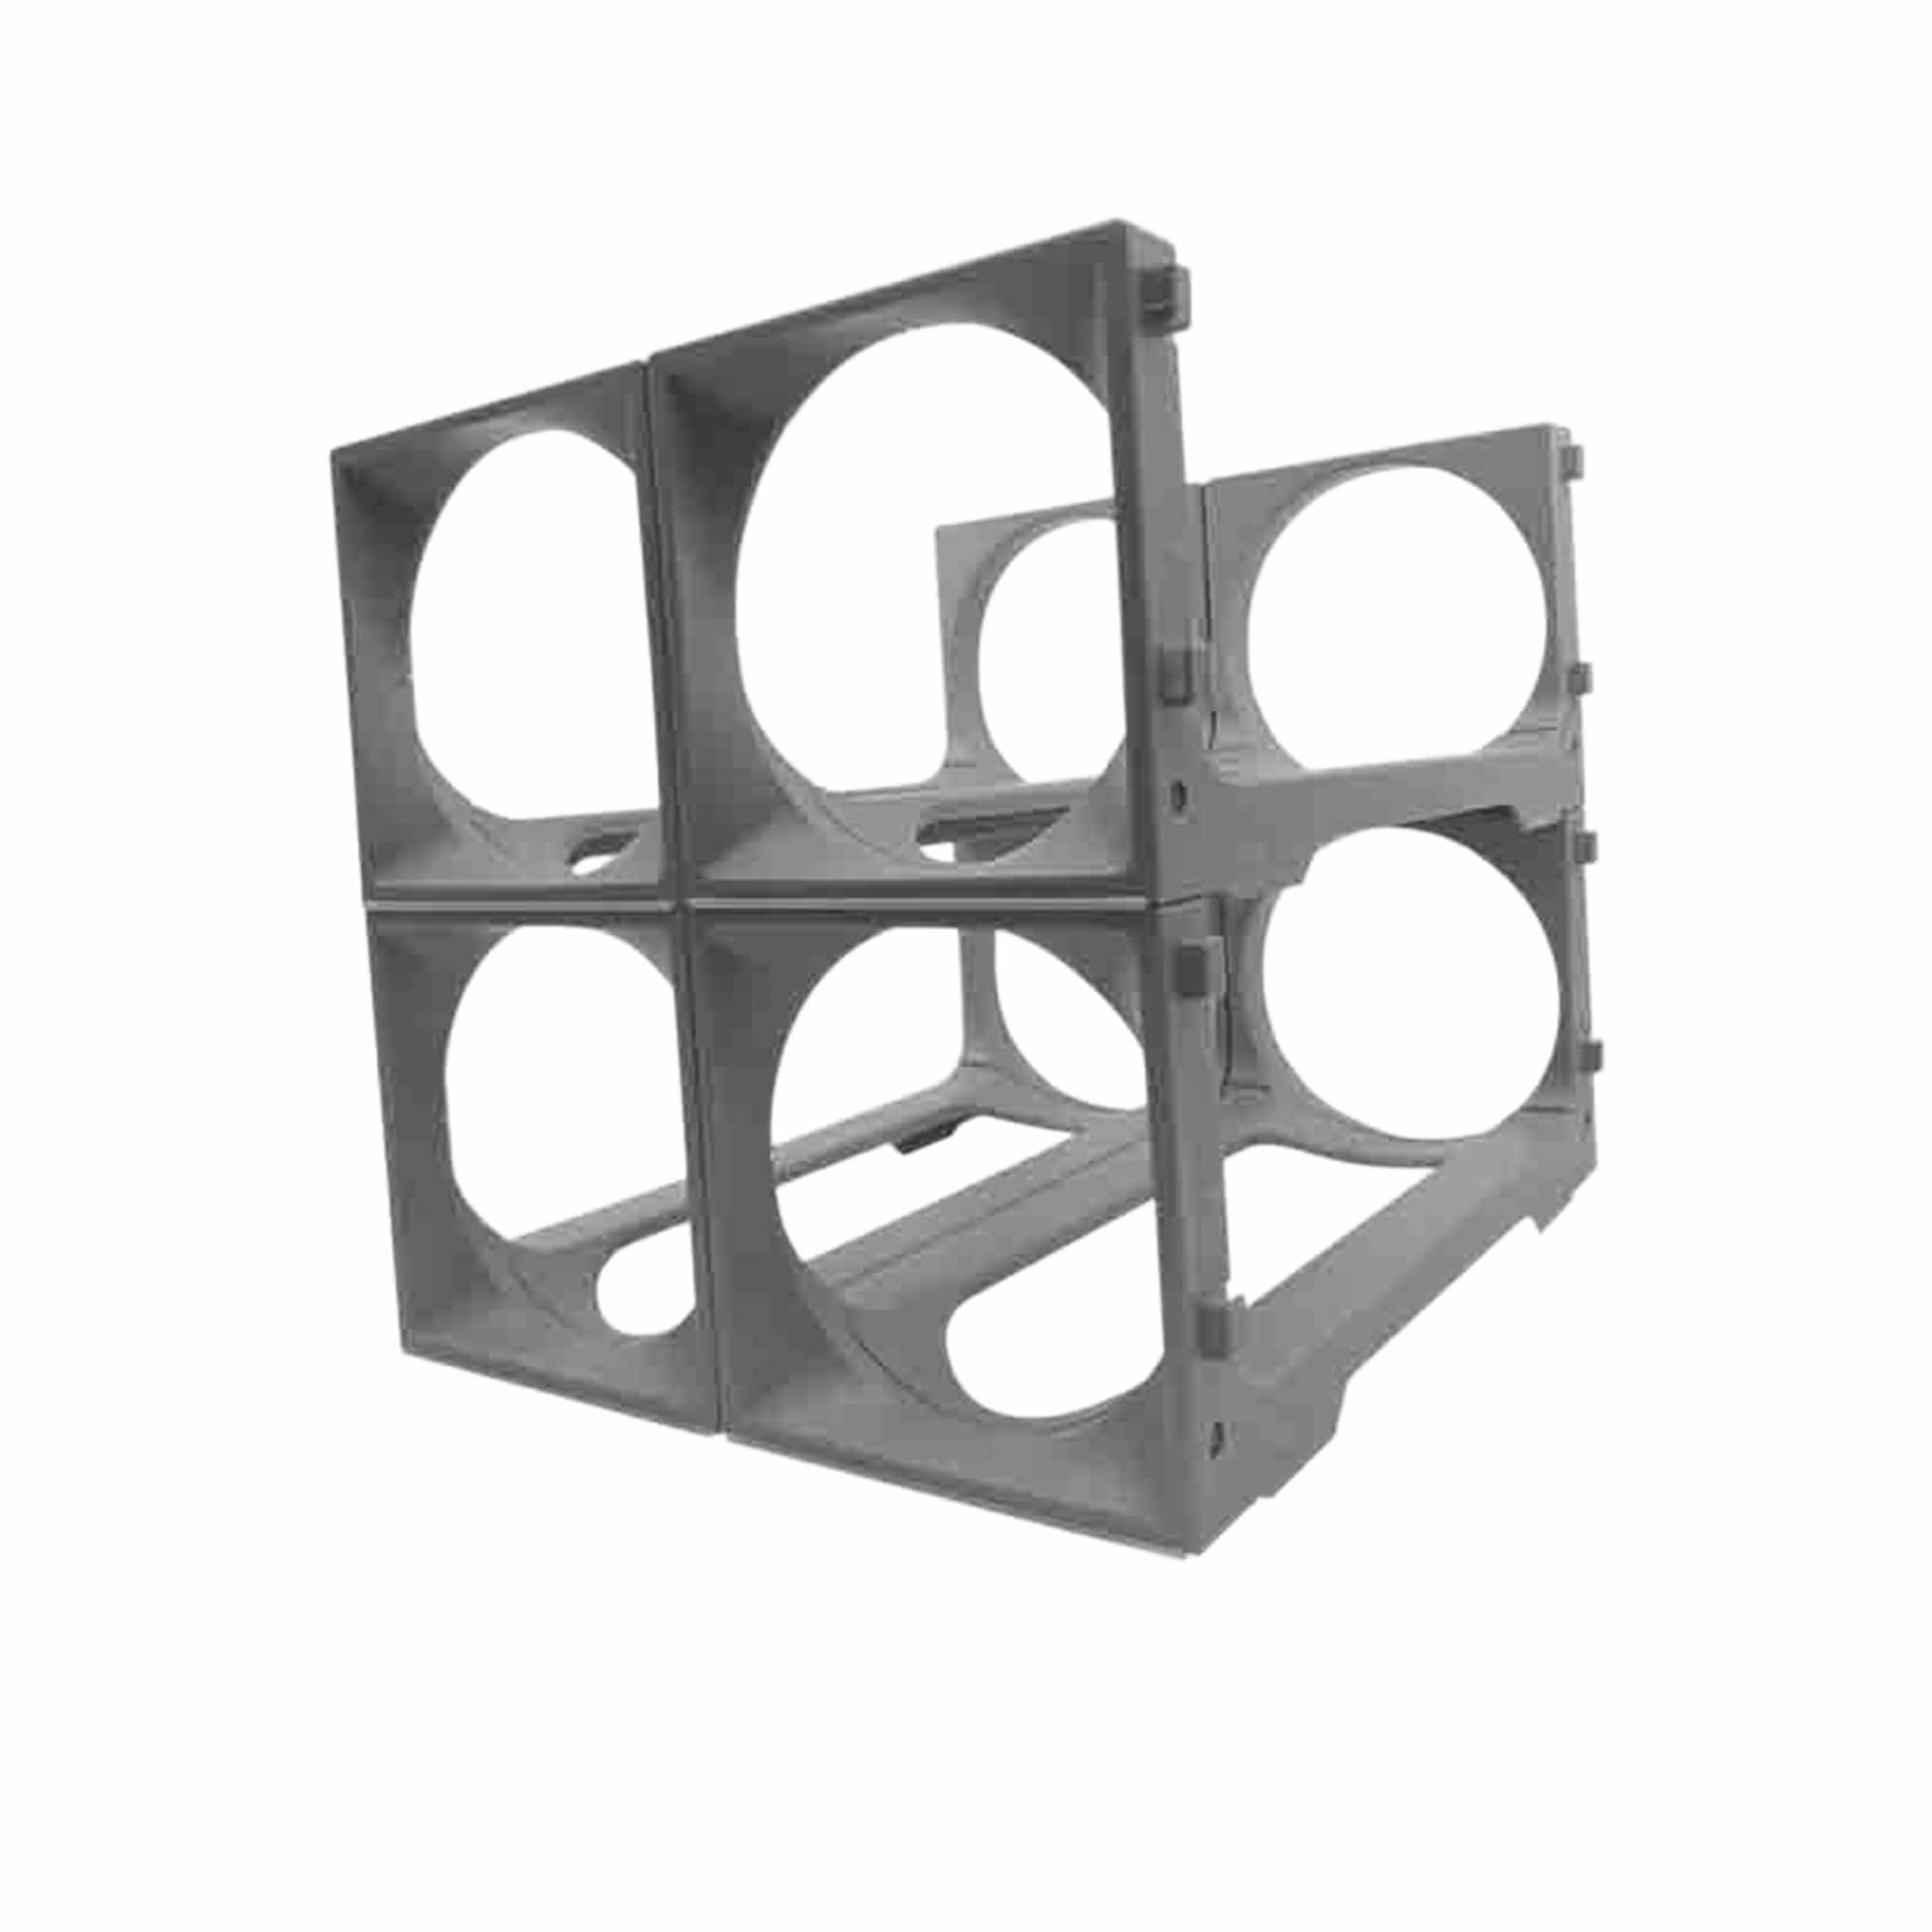 Stakrax 4 Bottle Fridge Rack Silver